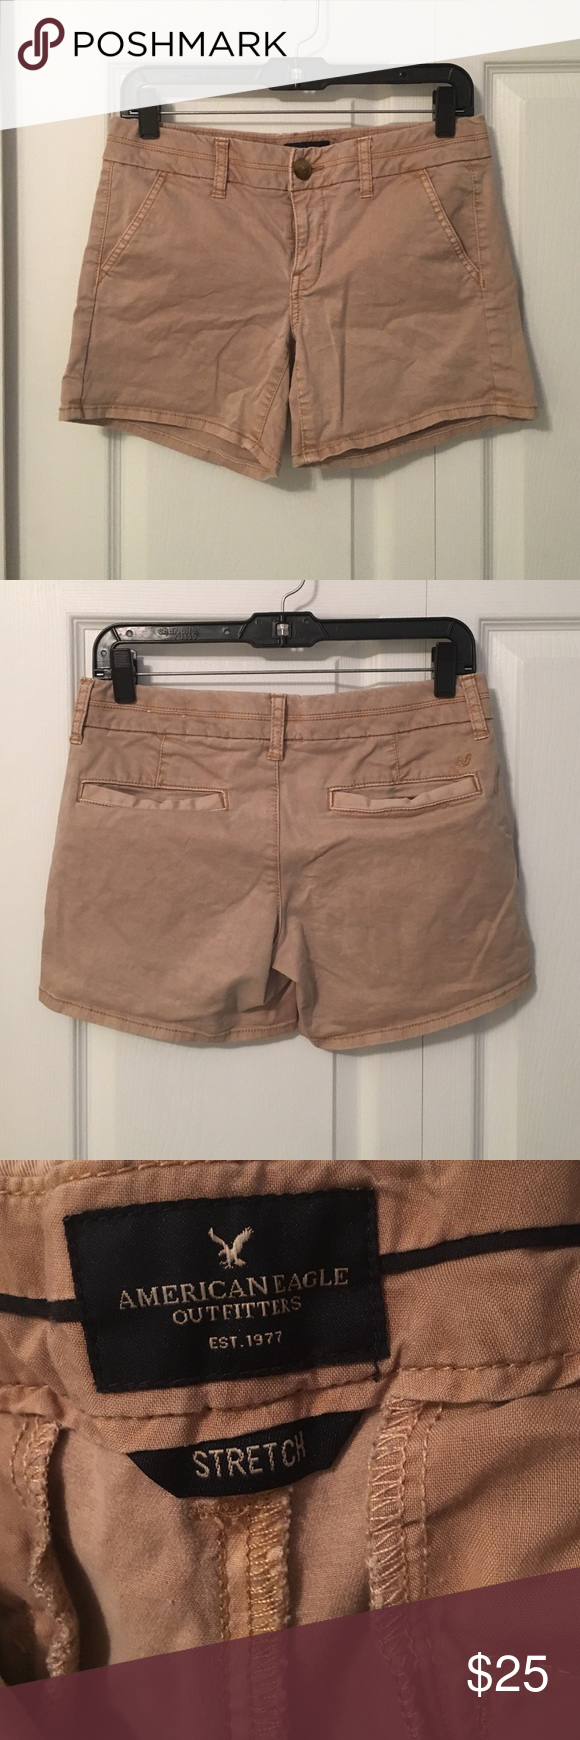 Tan AE Midi Shorts In excellent condition! No tears or stains! Price is firm! American Eagle Outfitters Shorts